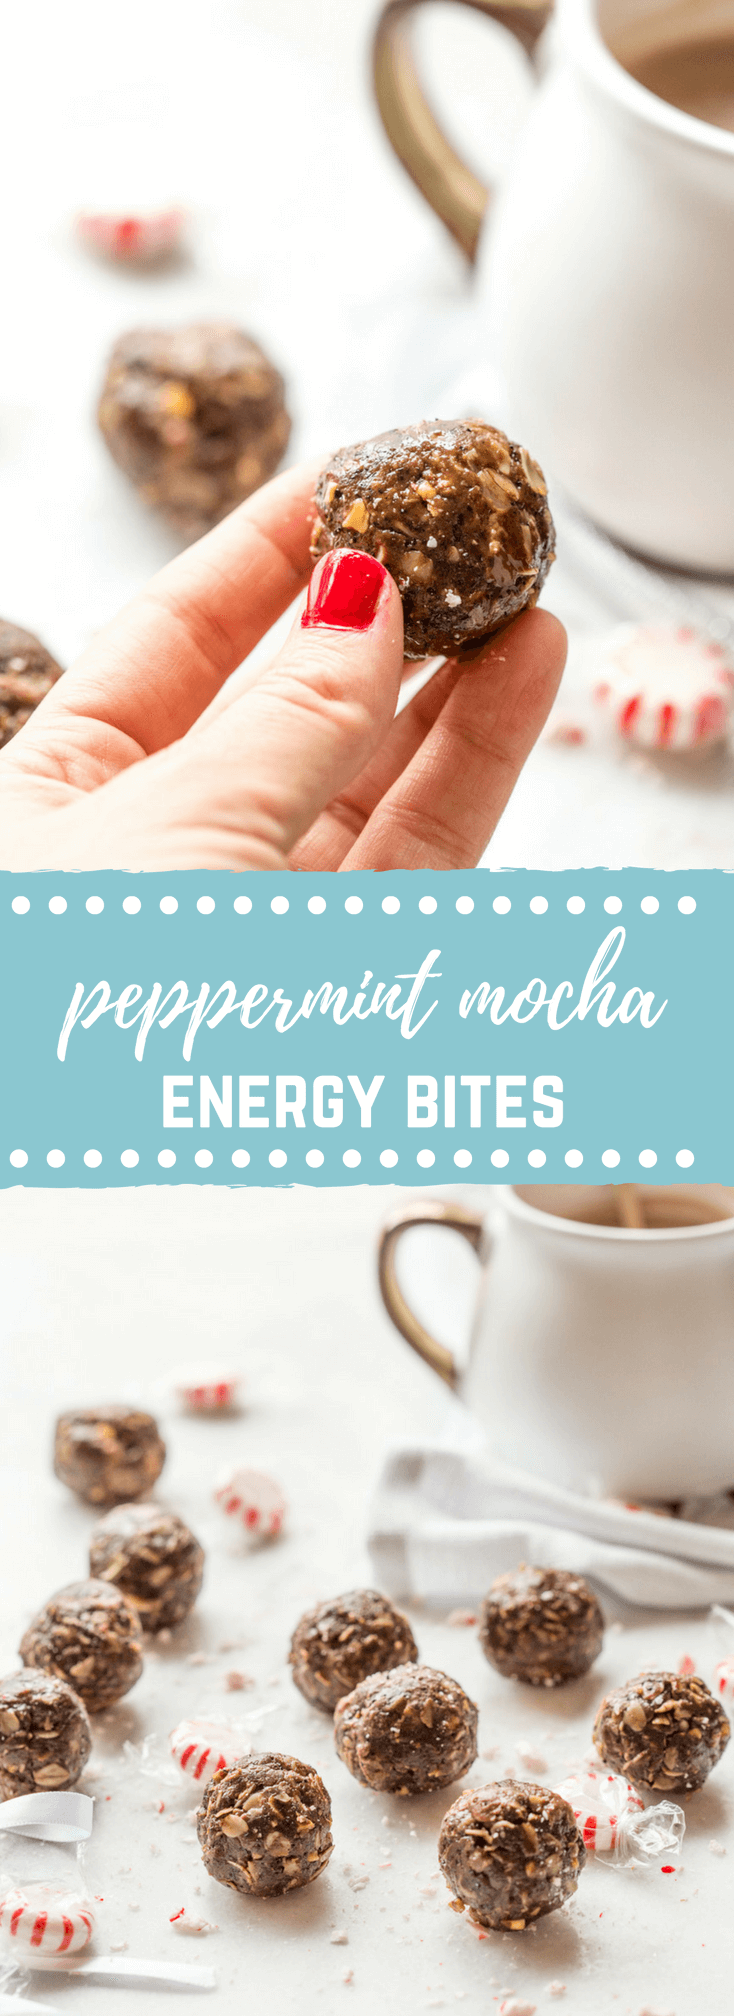 These Peppermint Mocha Energy Bites made with almond butter, oats, and ground coffee are sooo easy to prepare-- all you need is a big bowl and mixing spoon. They make the perfect snack for traveling during the holidays!